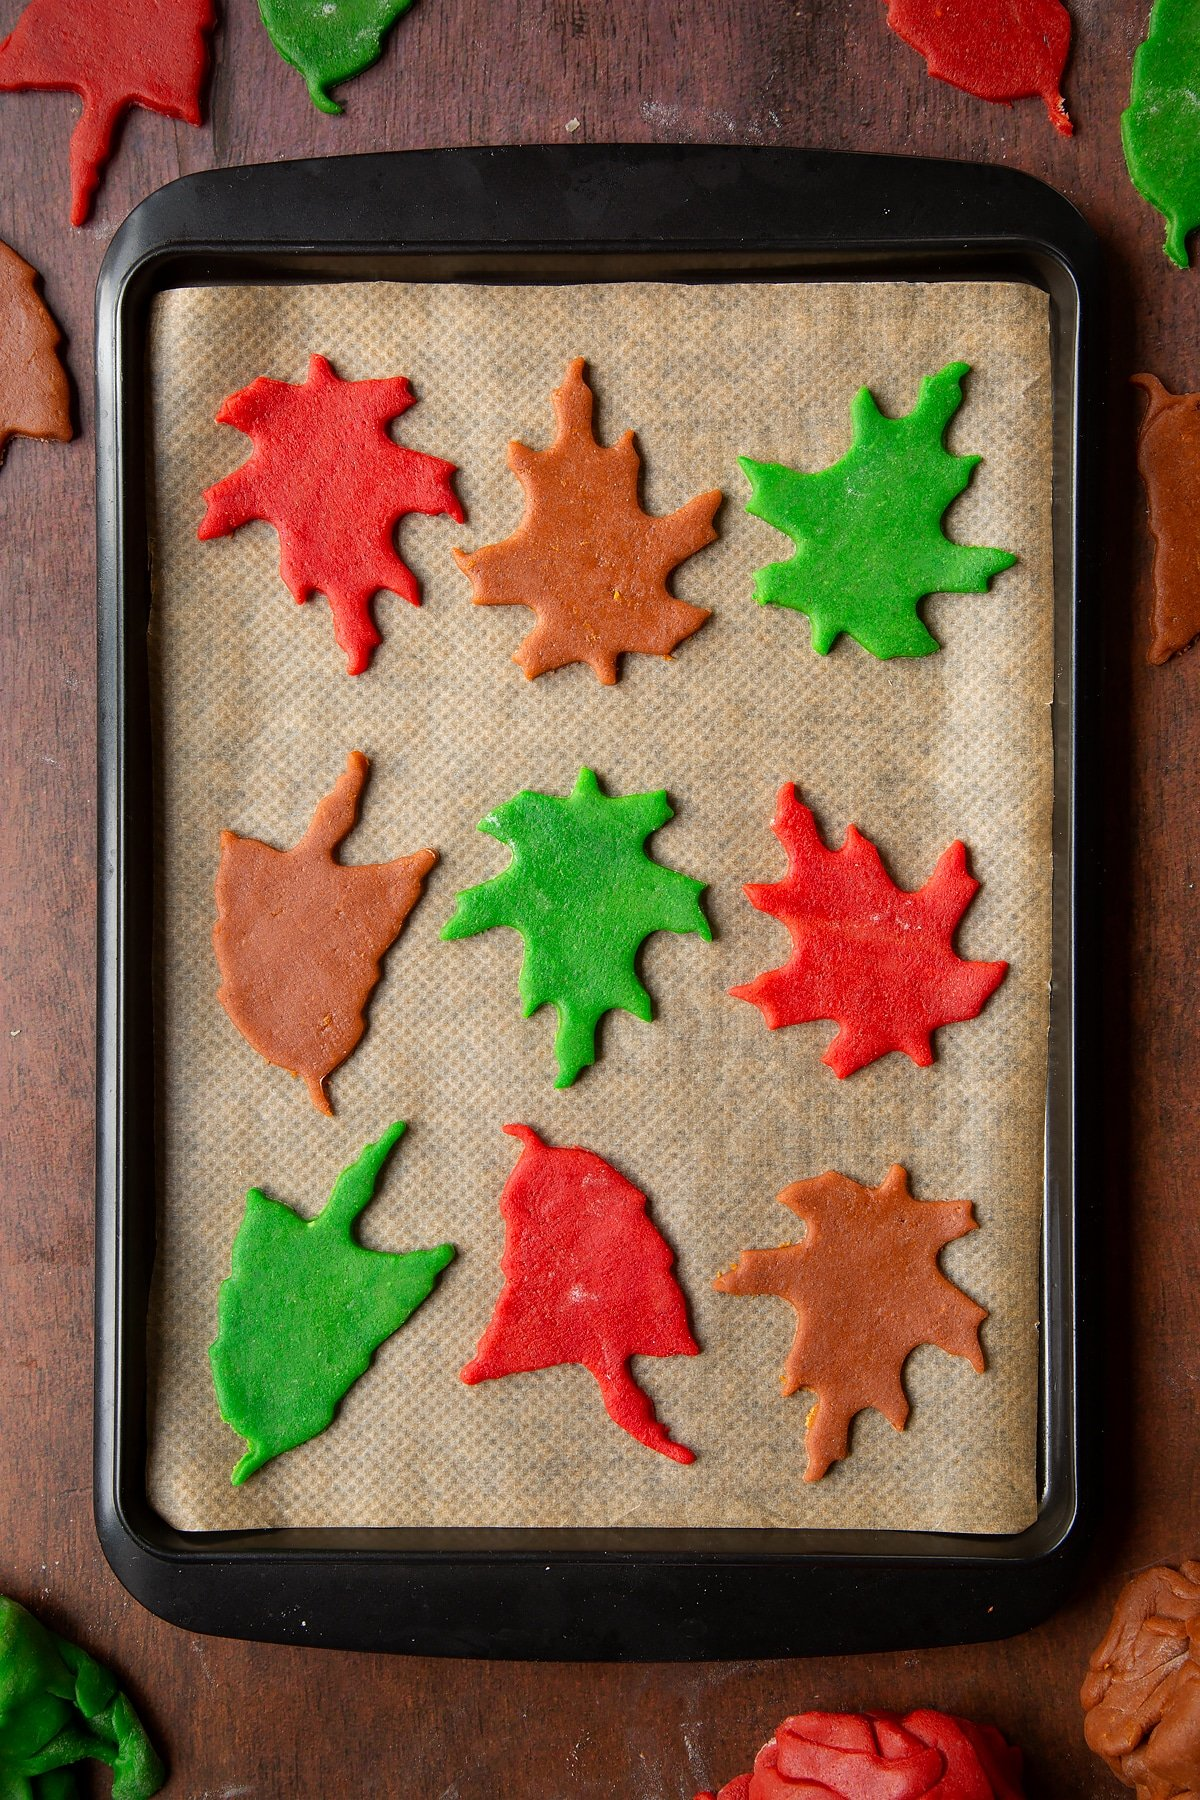 Autumn leaf cookies ready to bake on a tray lined with baking paper.